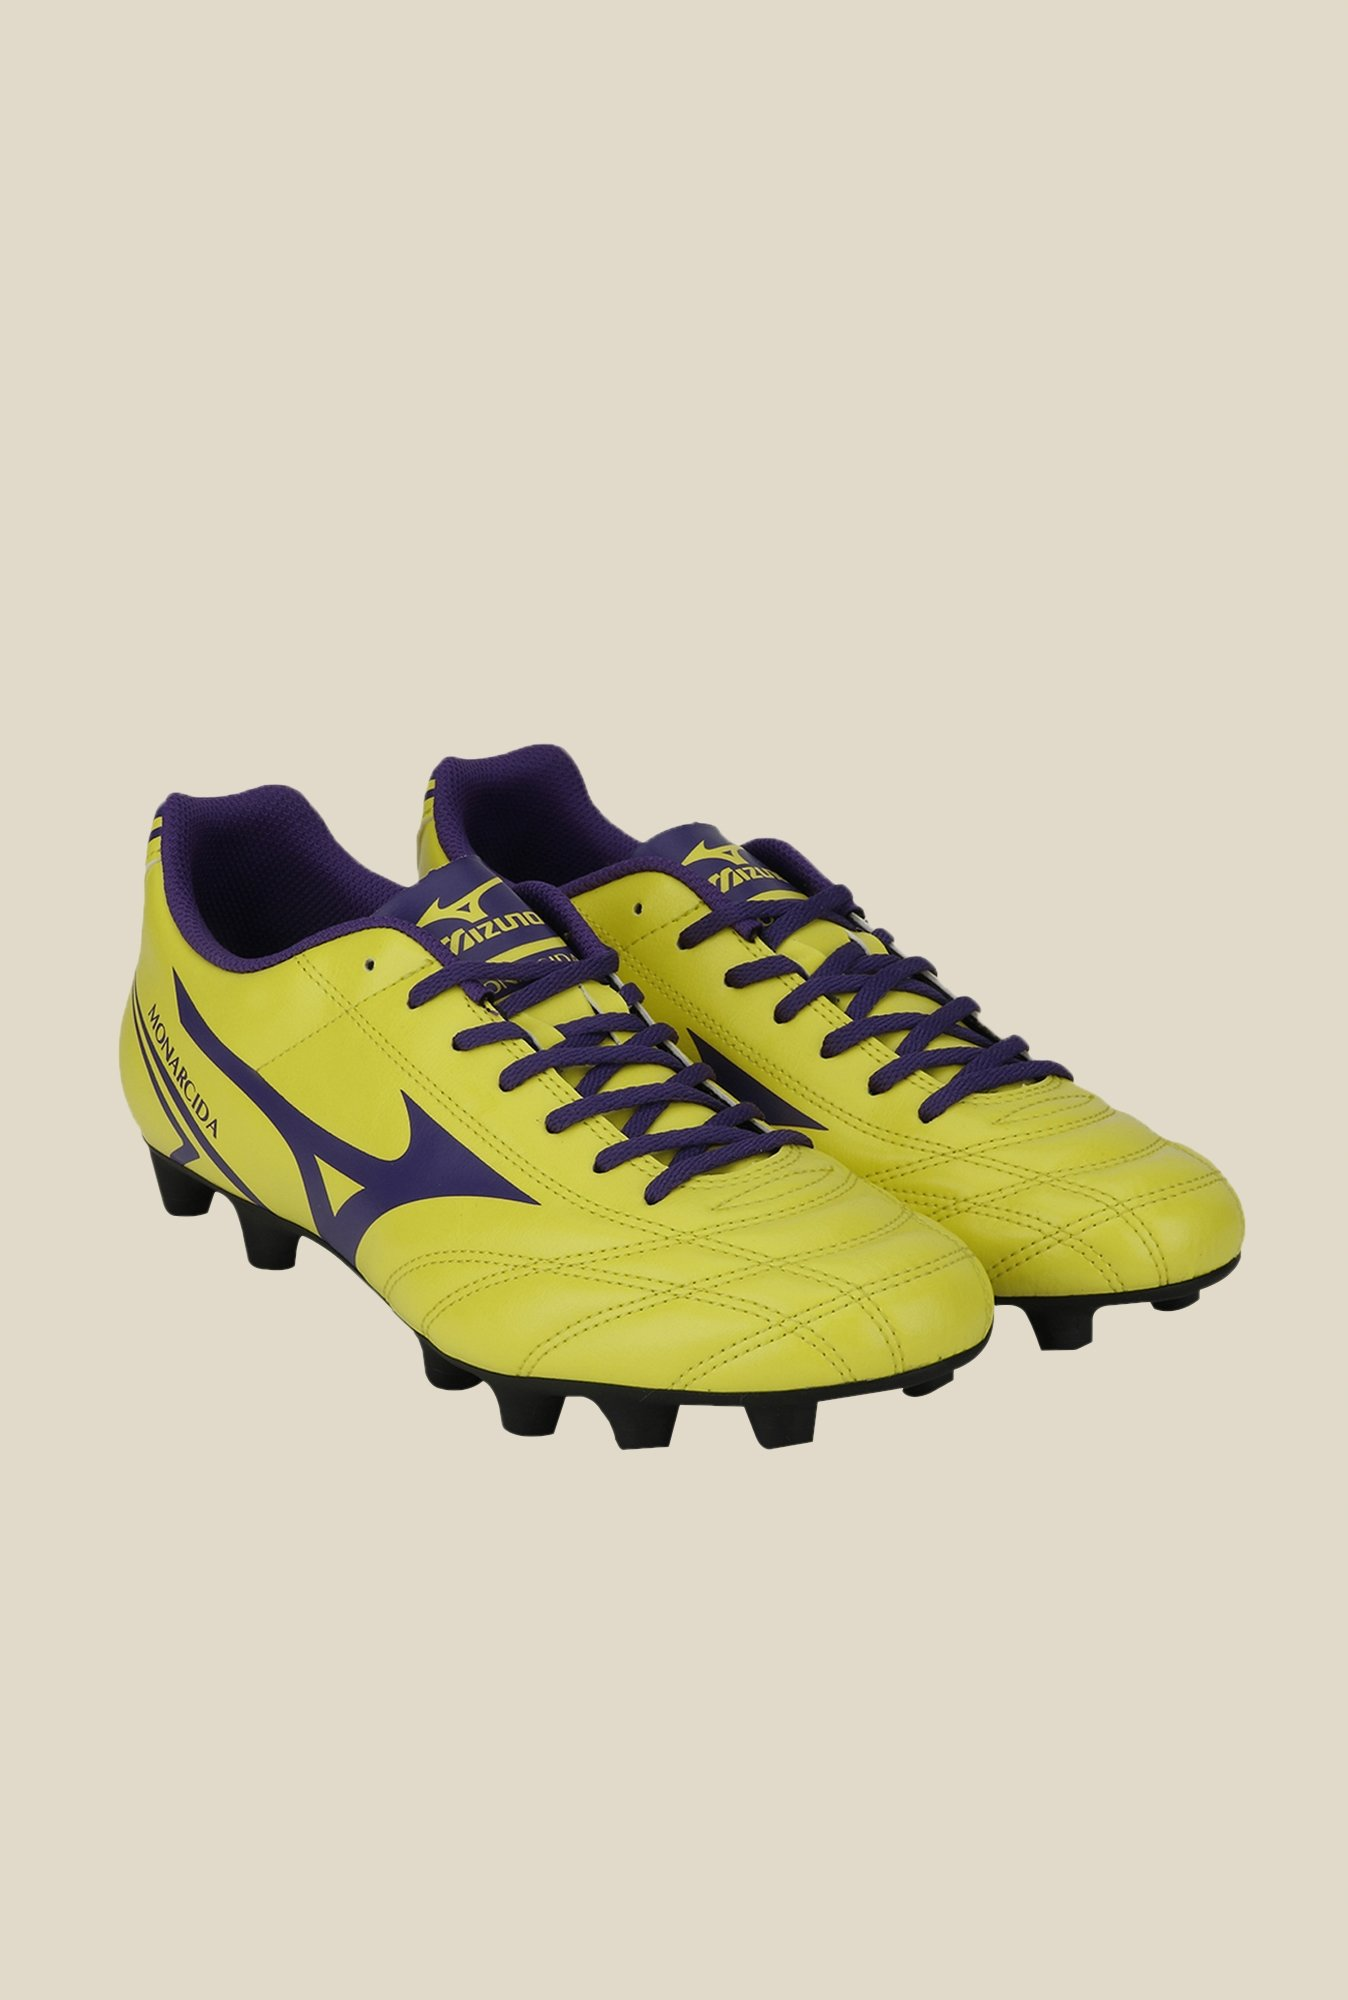 Mizuno Monarcida MD (EU) Green & Purple Football Shoes